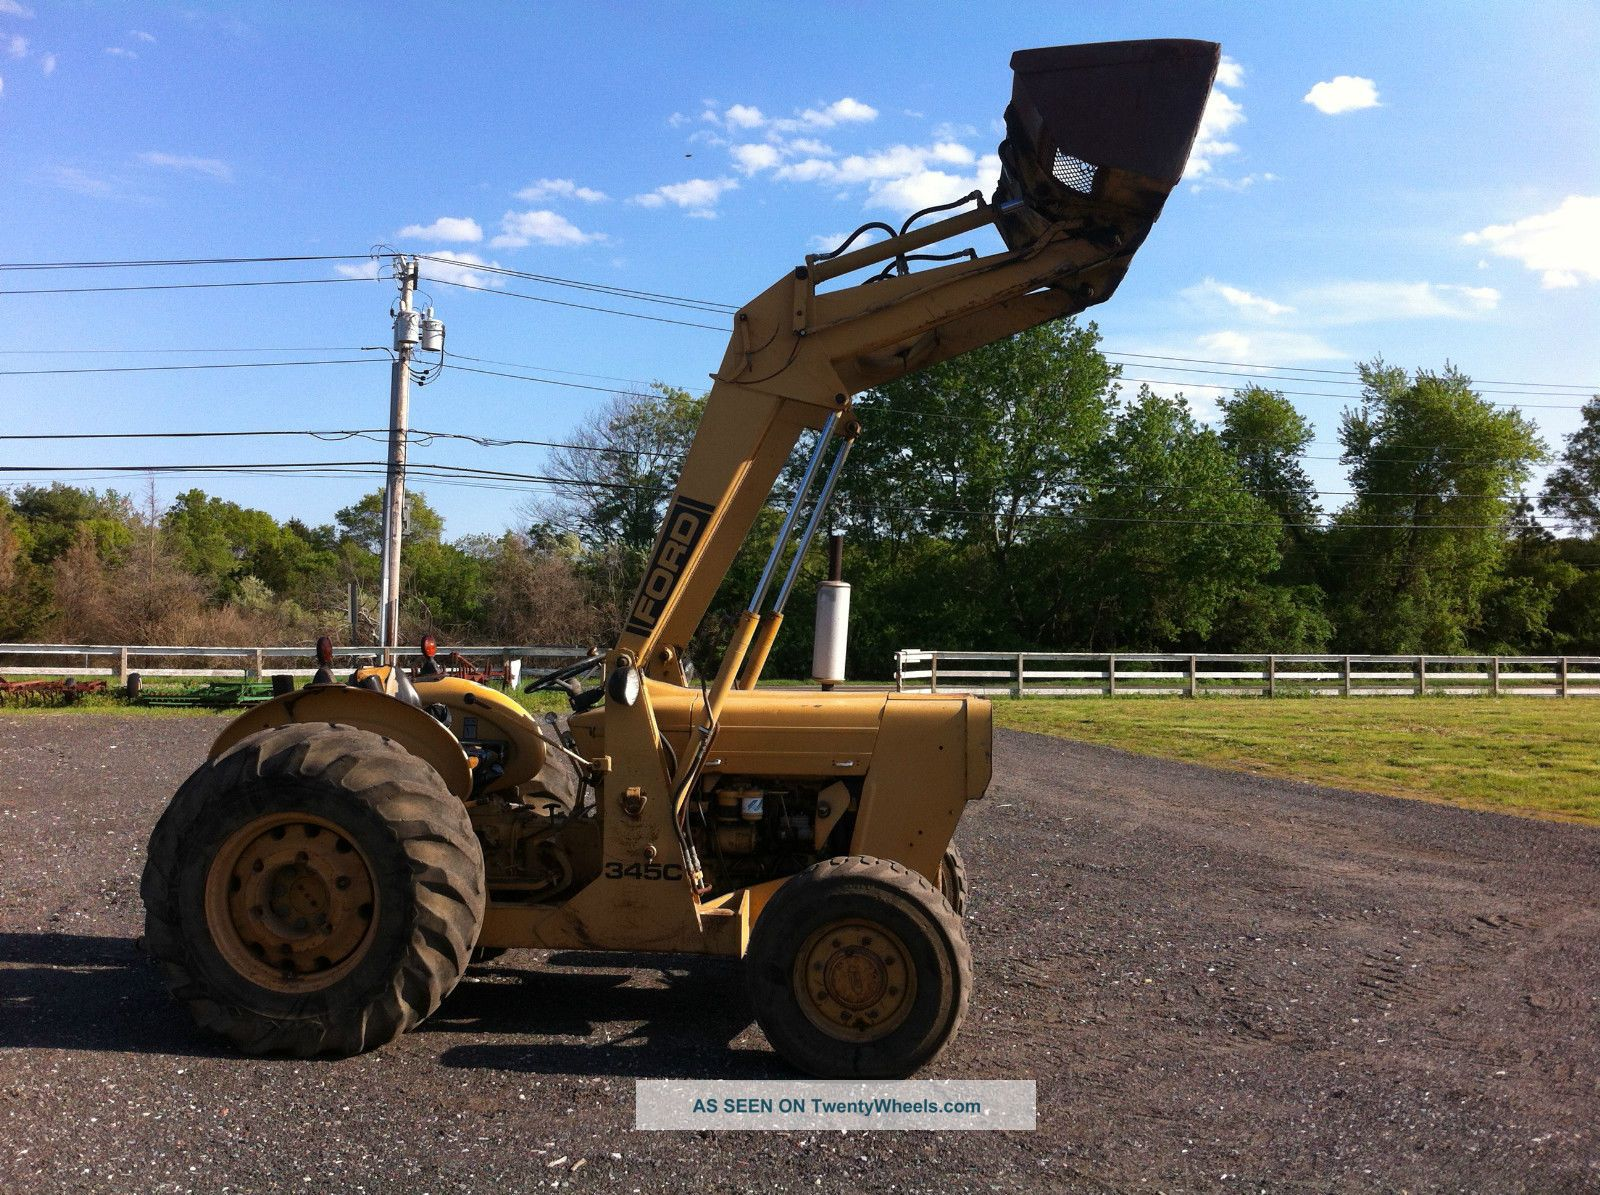 6 Wheel Drive Tractor : Ford c wheel drive diesel tractor loader